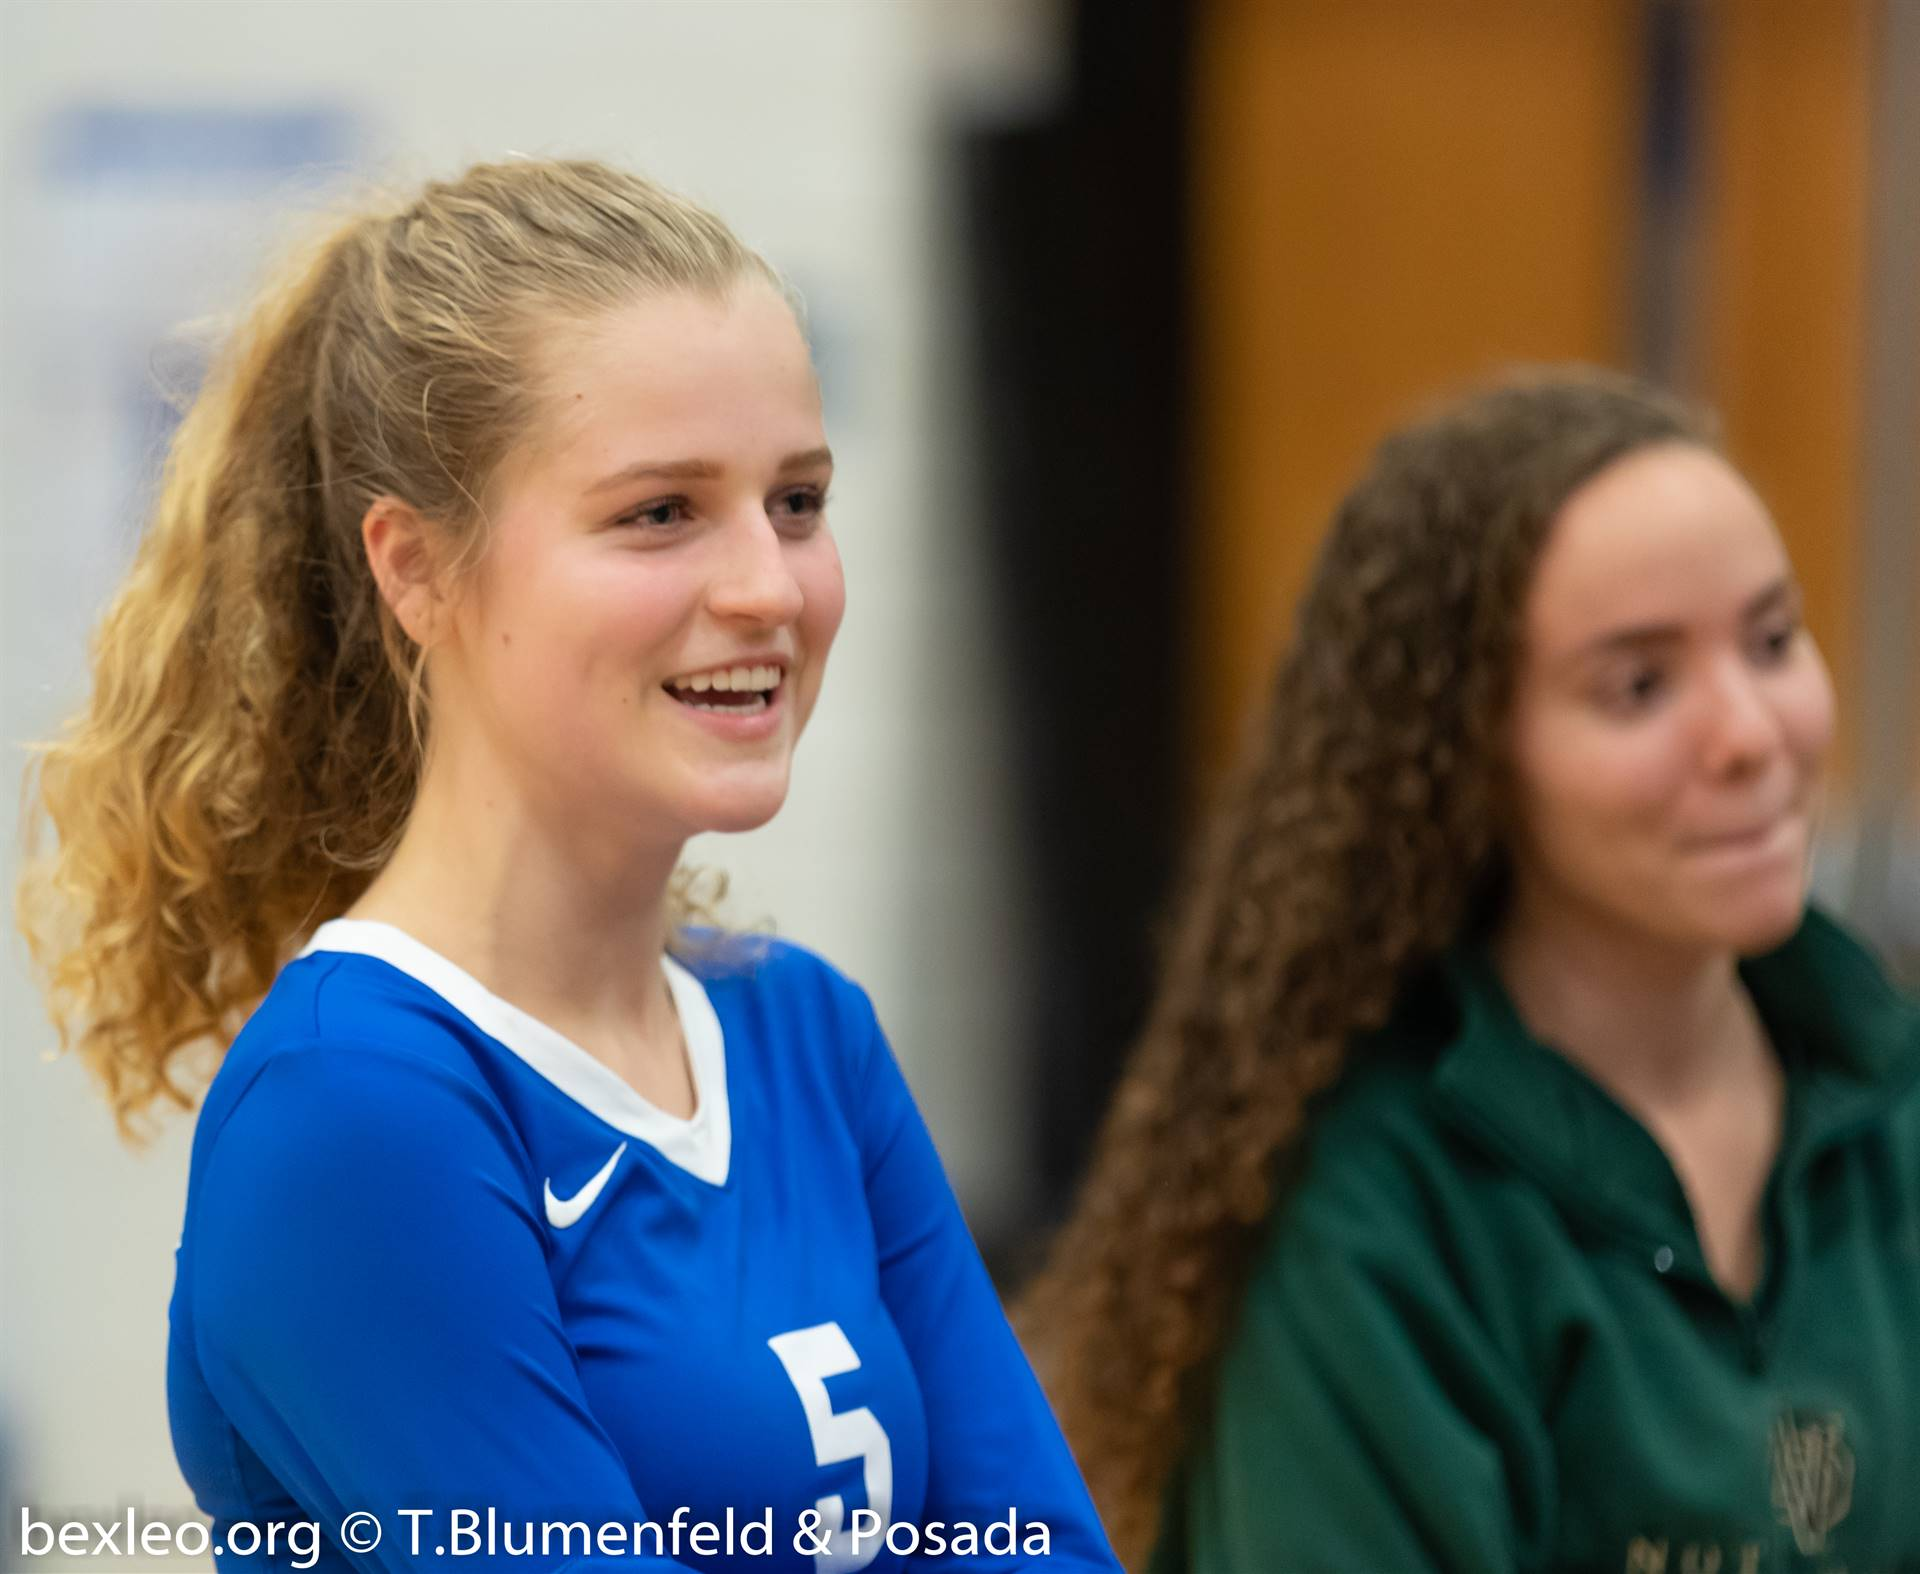 Volleyball player smiling